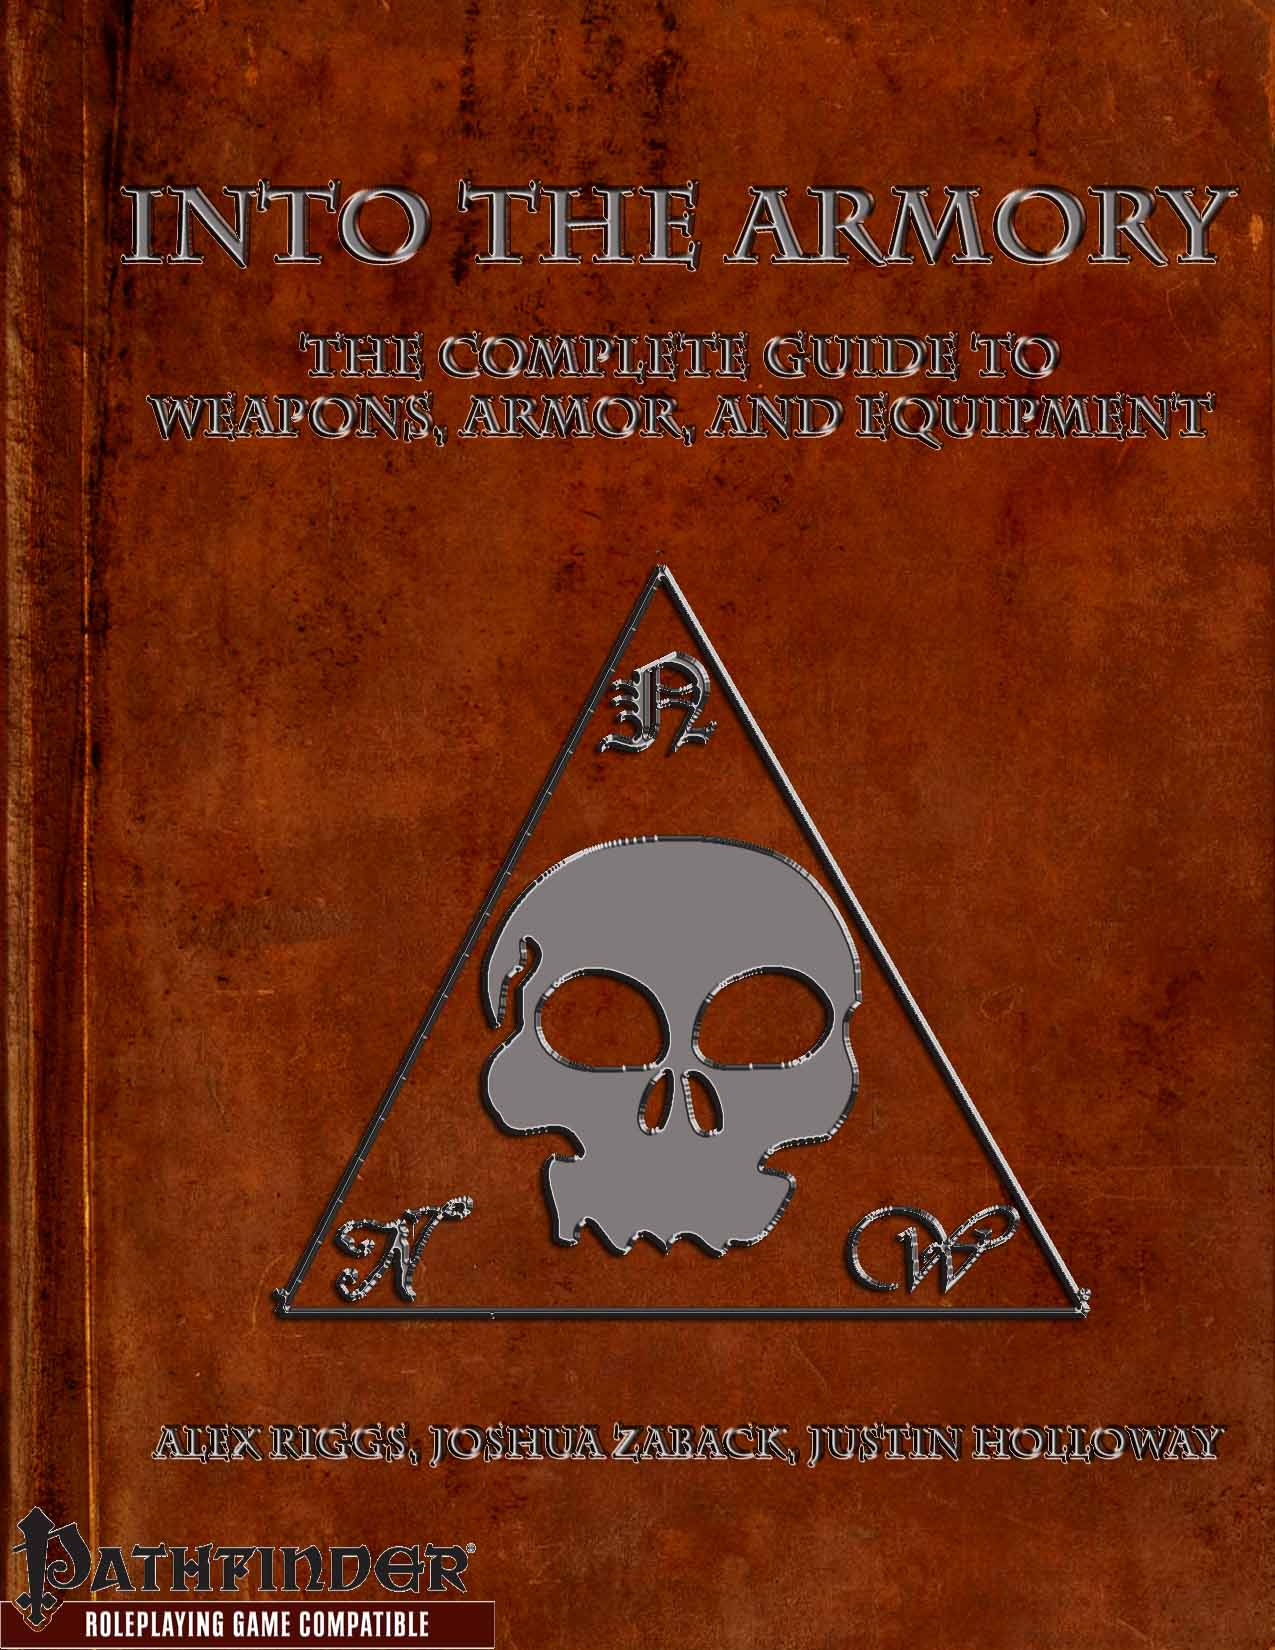 Into the Armory